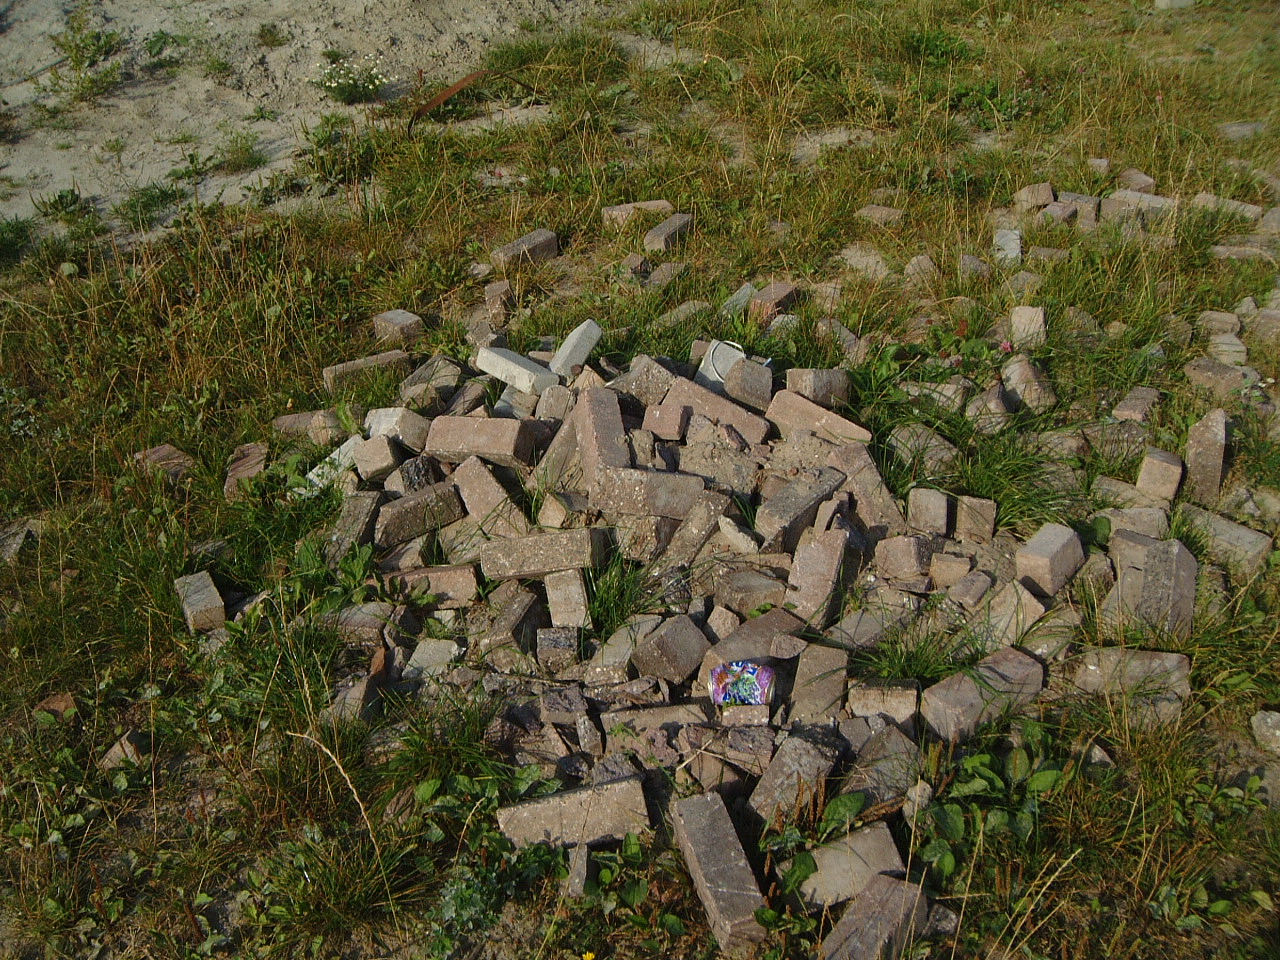 maartent pile of bricks in a field grass soda can littering